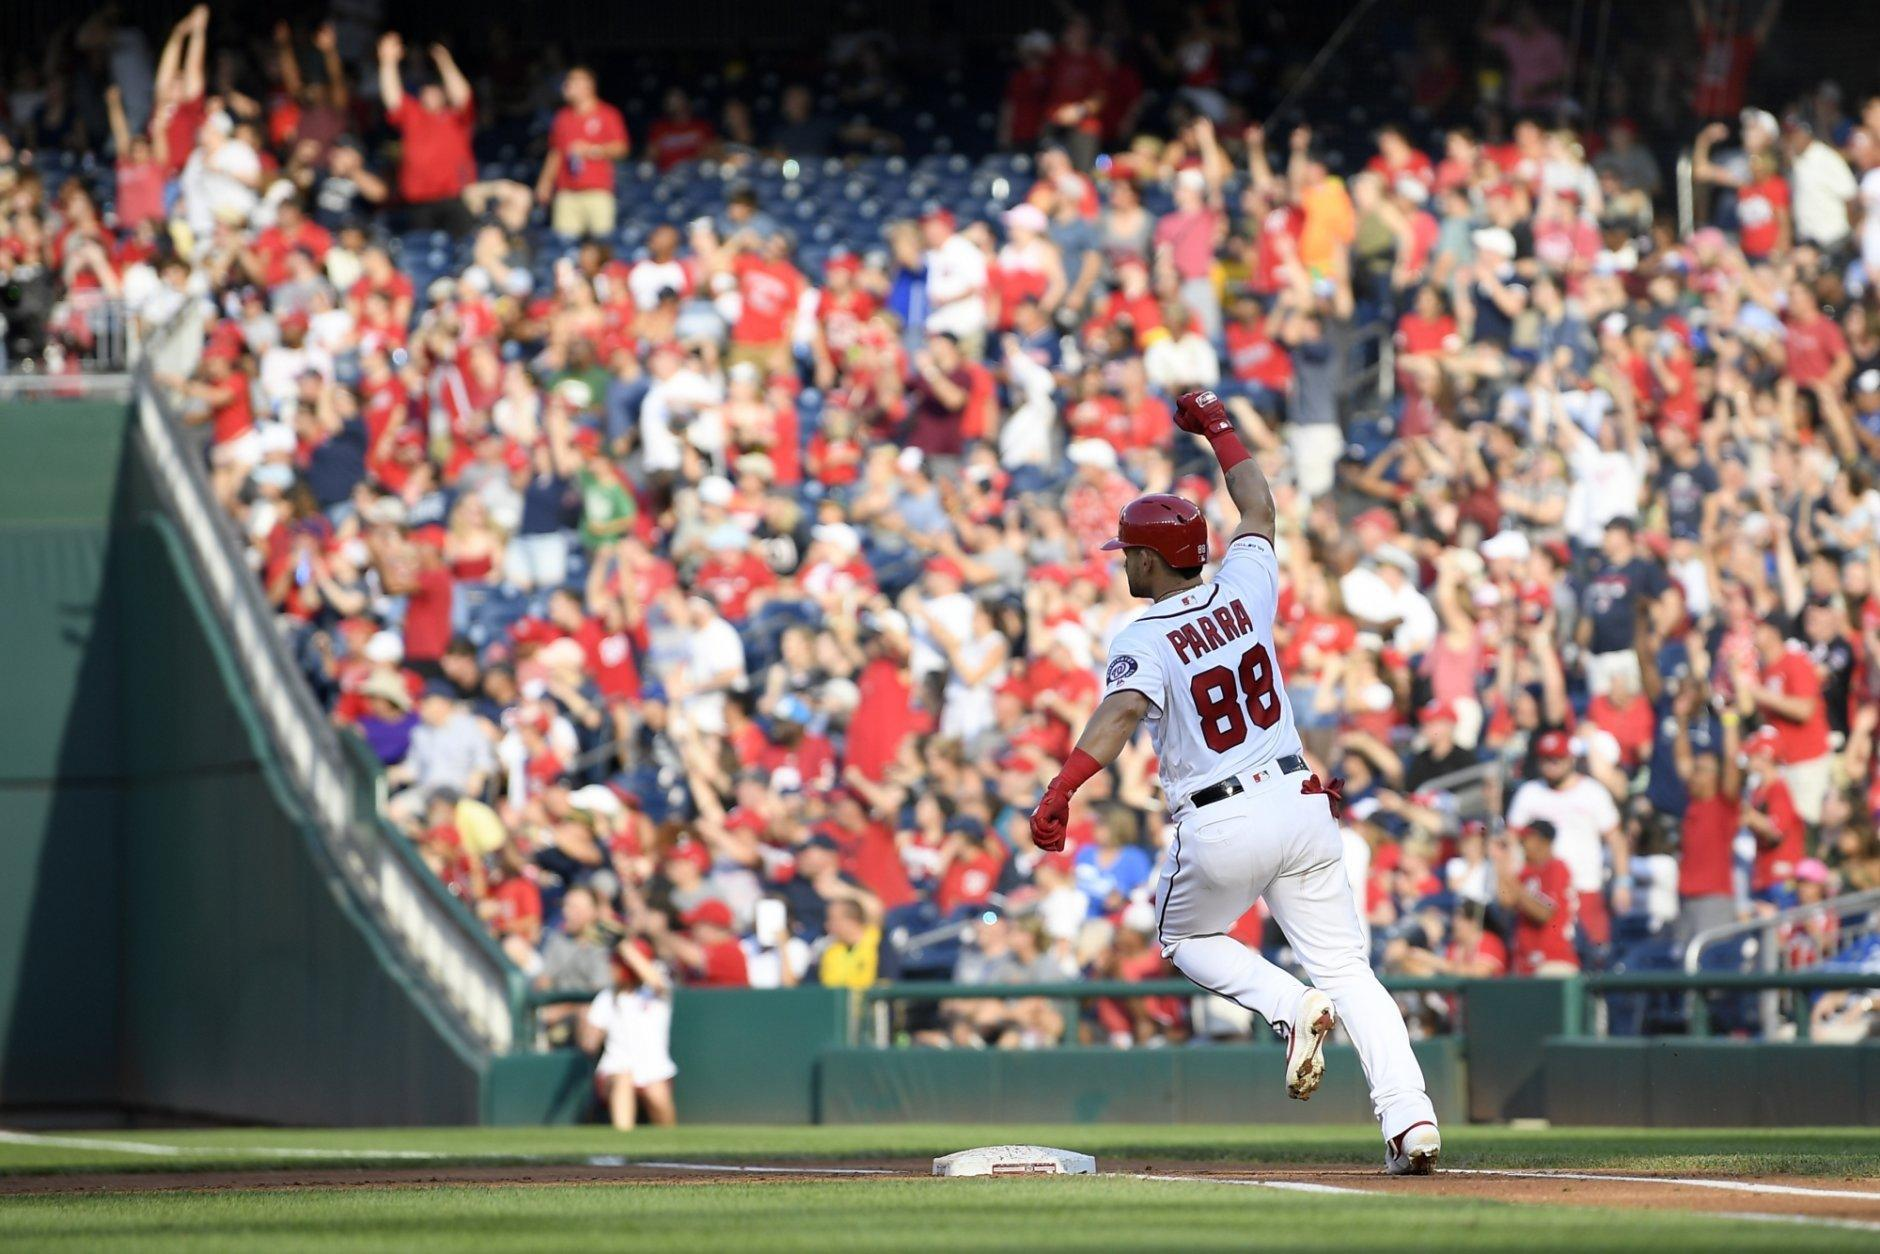 Washington Nationals' Gerardo Parra celebrates his grand slam as he prepares to round first during the second inning of a baseball game against the Cleveland Indians, Saturday, Sept. 28, 2019, in Washington. (AP Photo/Nick Wass)